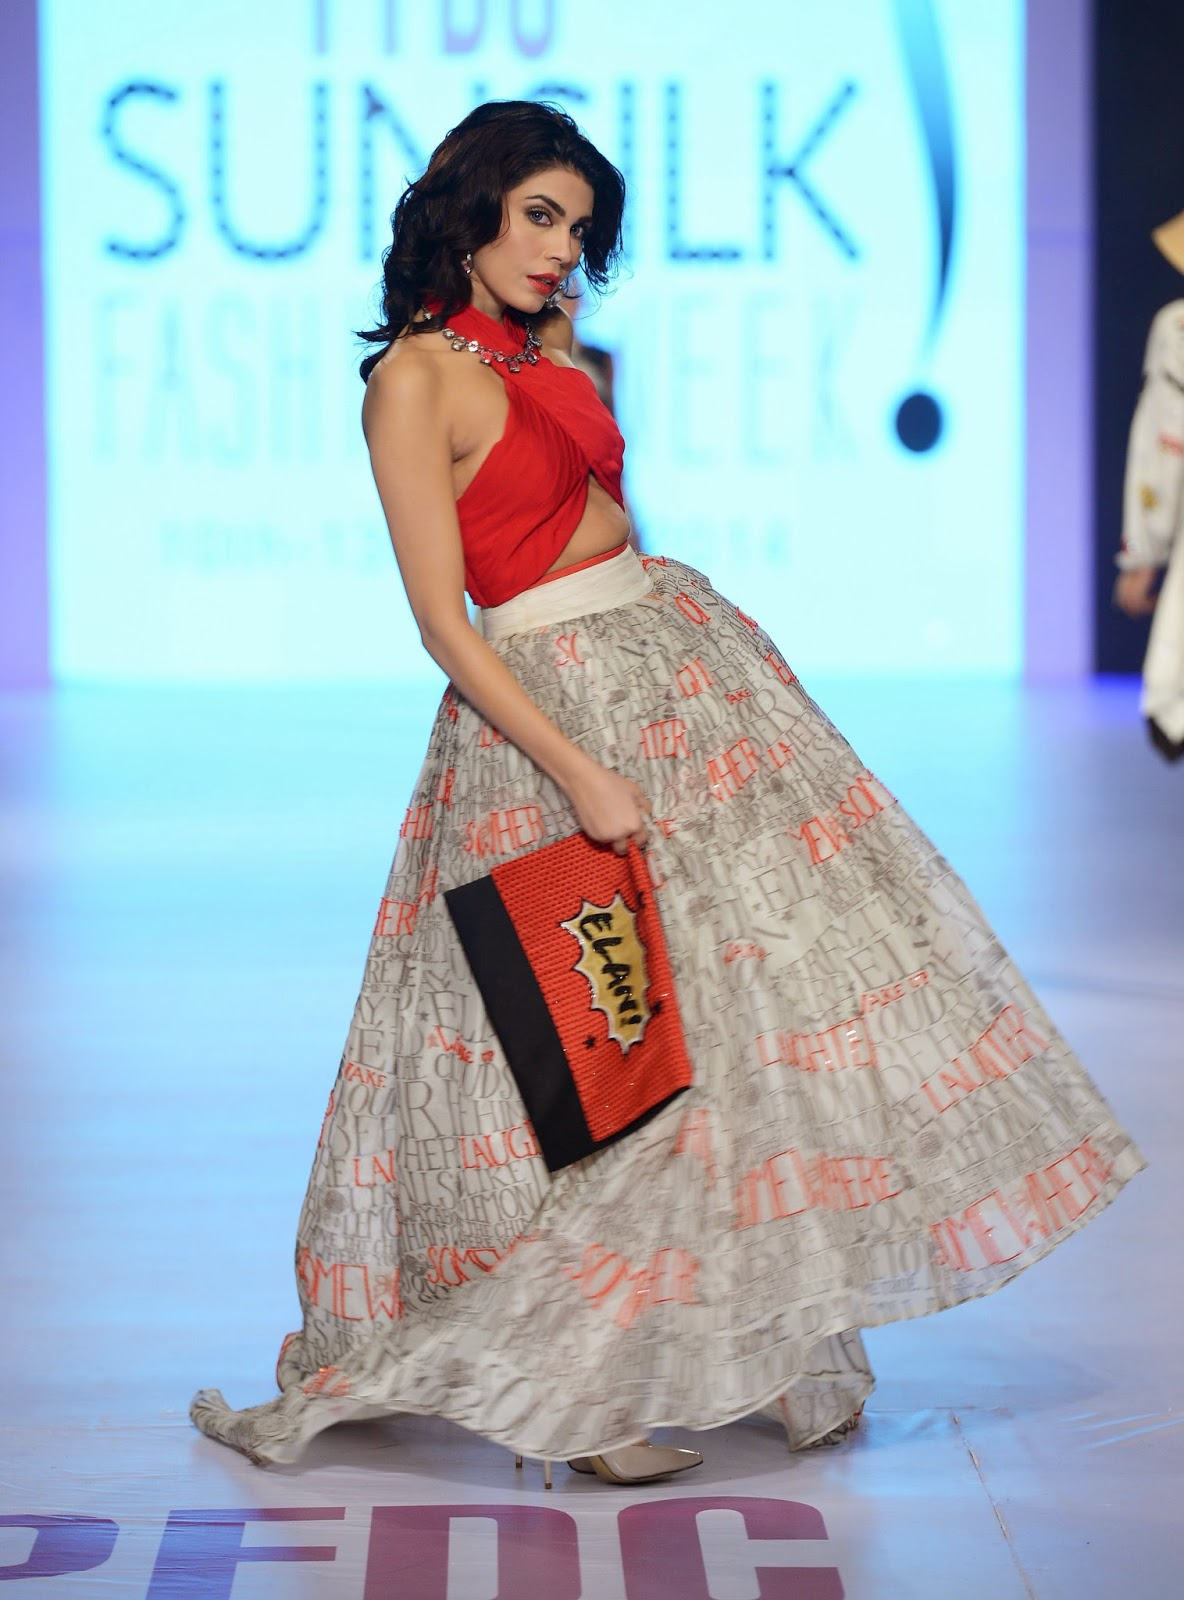 PFDC Sunsilk Fashion Week 2014 Round-up: Fantasy or the business of fashion?